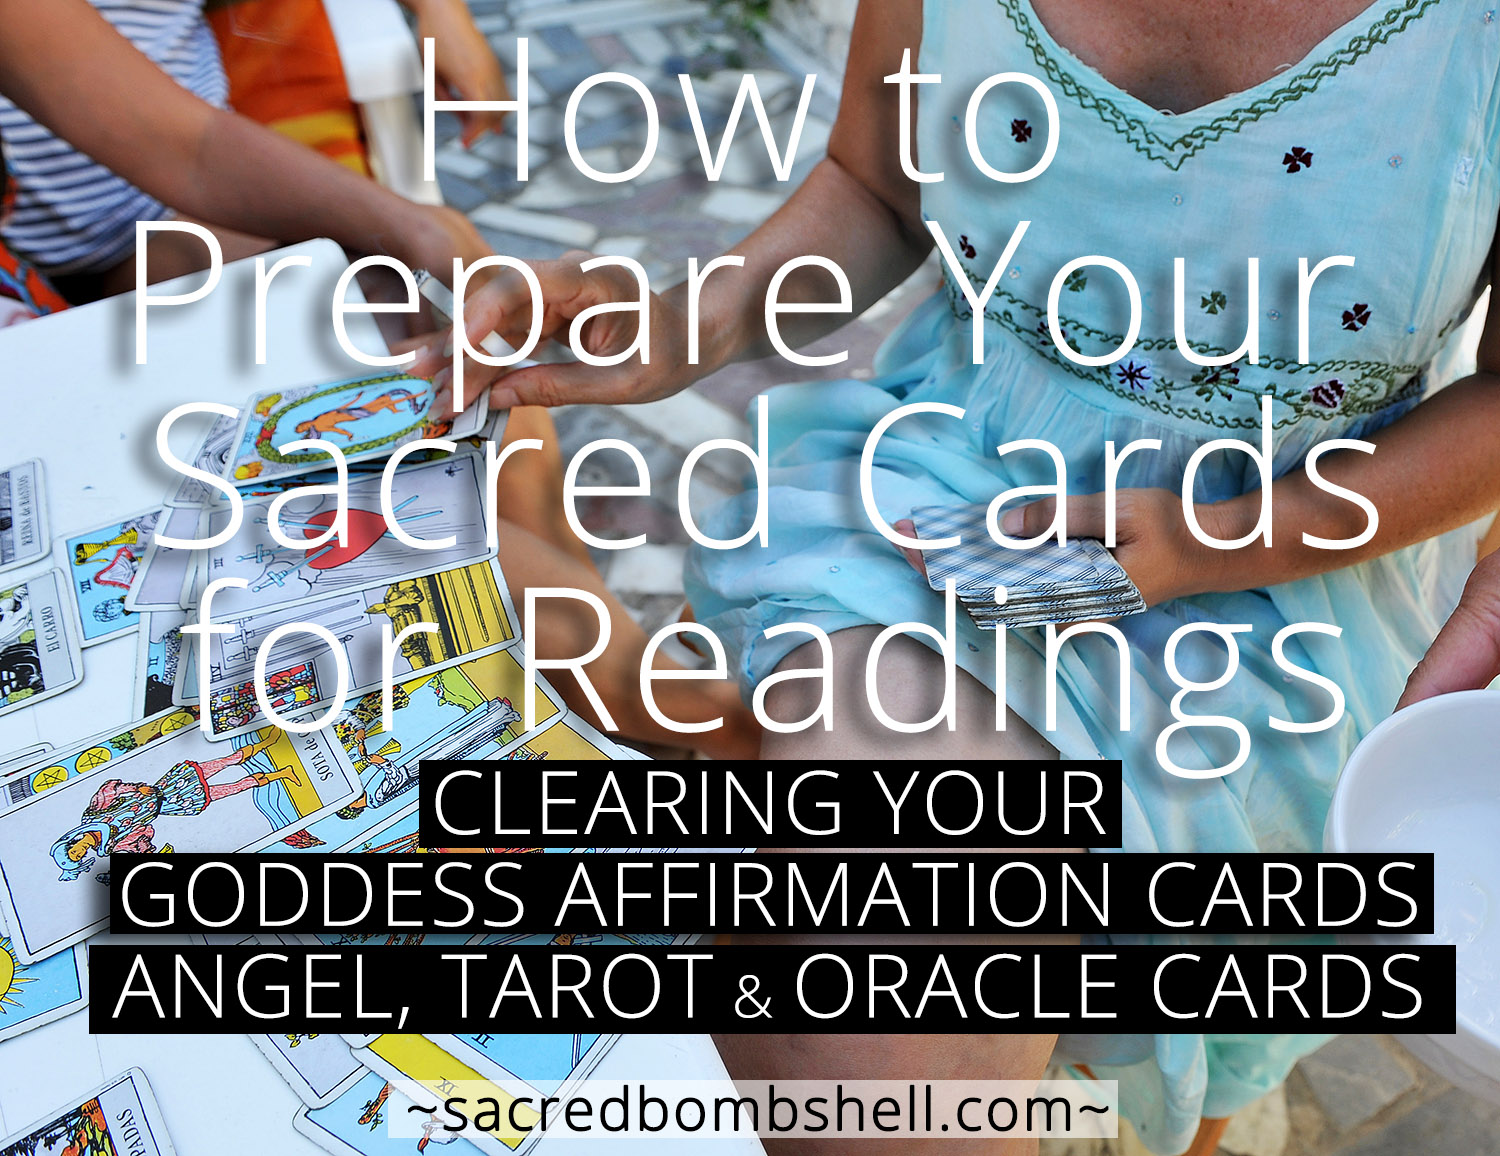 How to Prepare Your Cards for Reading